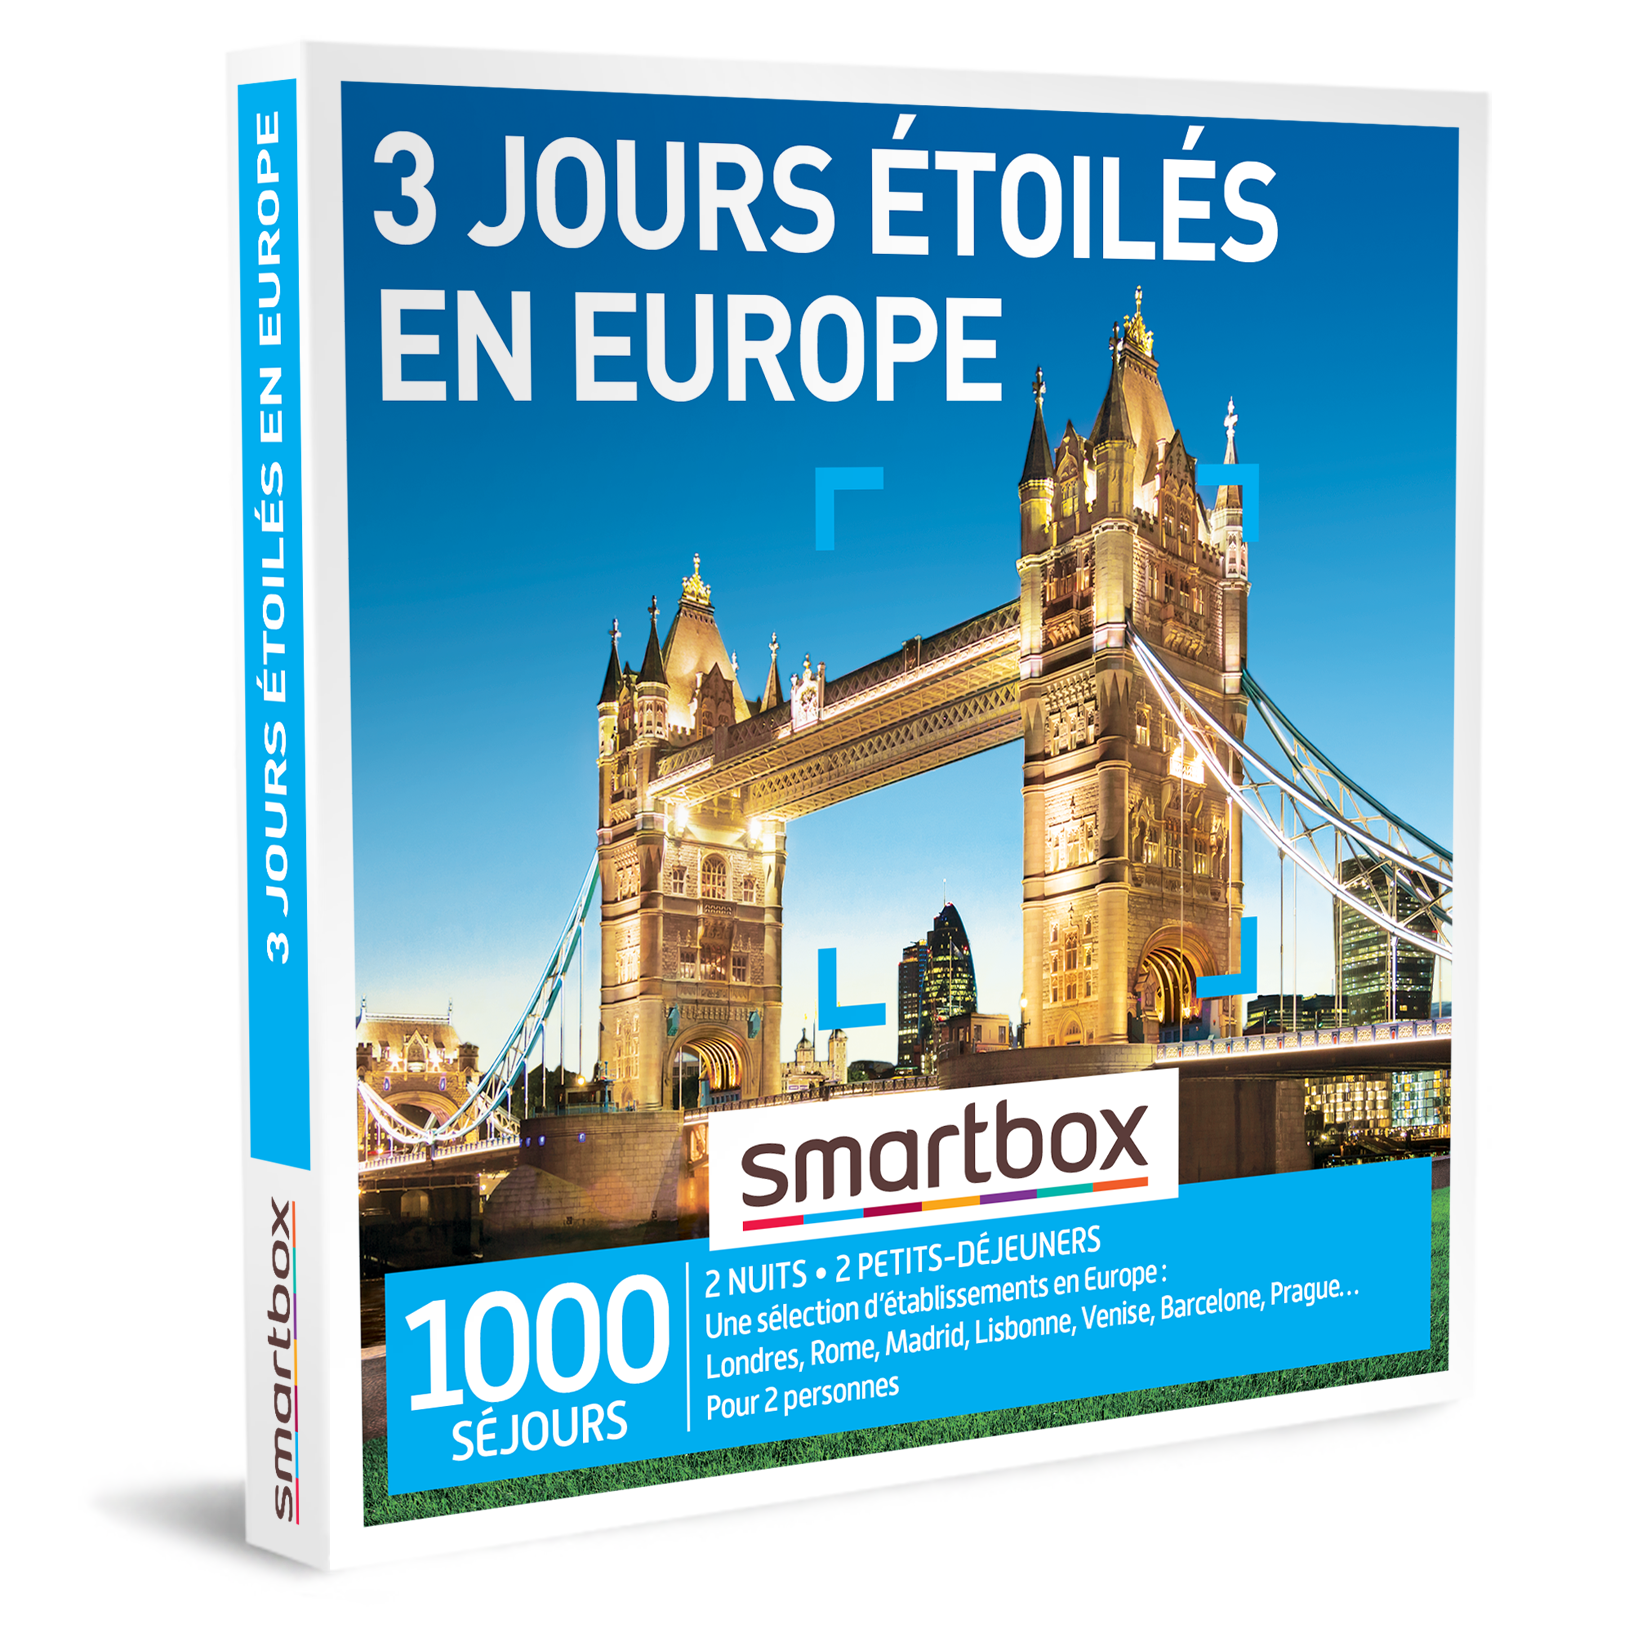 https://www.obiz.fr//medias/product_by_usage/image/146000/146400/b0e455cfd4bbb770a8d3a5db125475ee.png